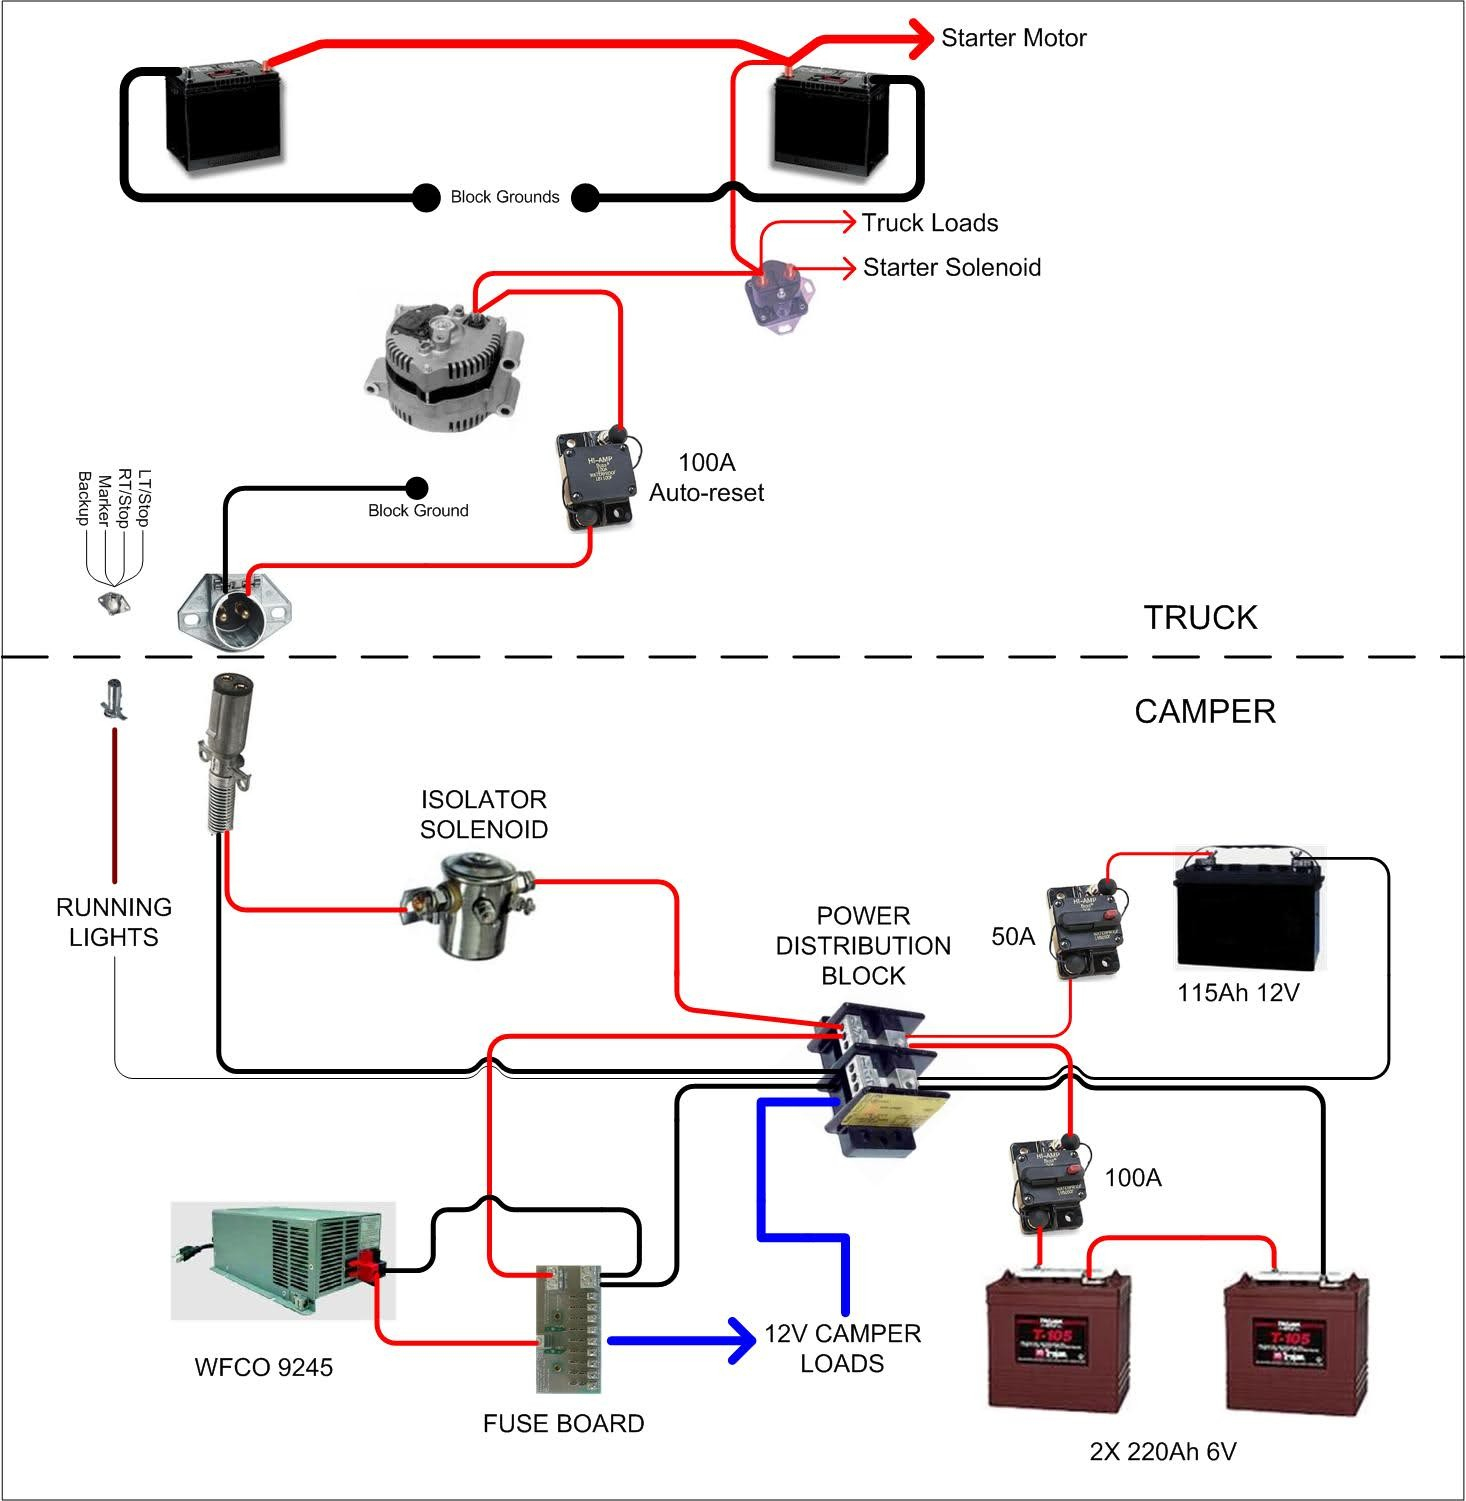 Triton Snowmobile Trailer Wiring Diagram | Wiring Diagram - Triton Xt Trailer Wiring Diagram